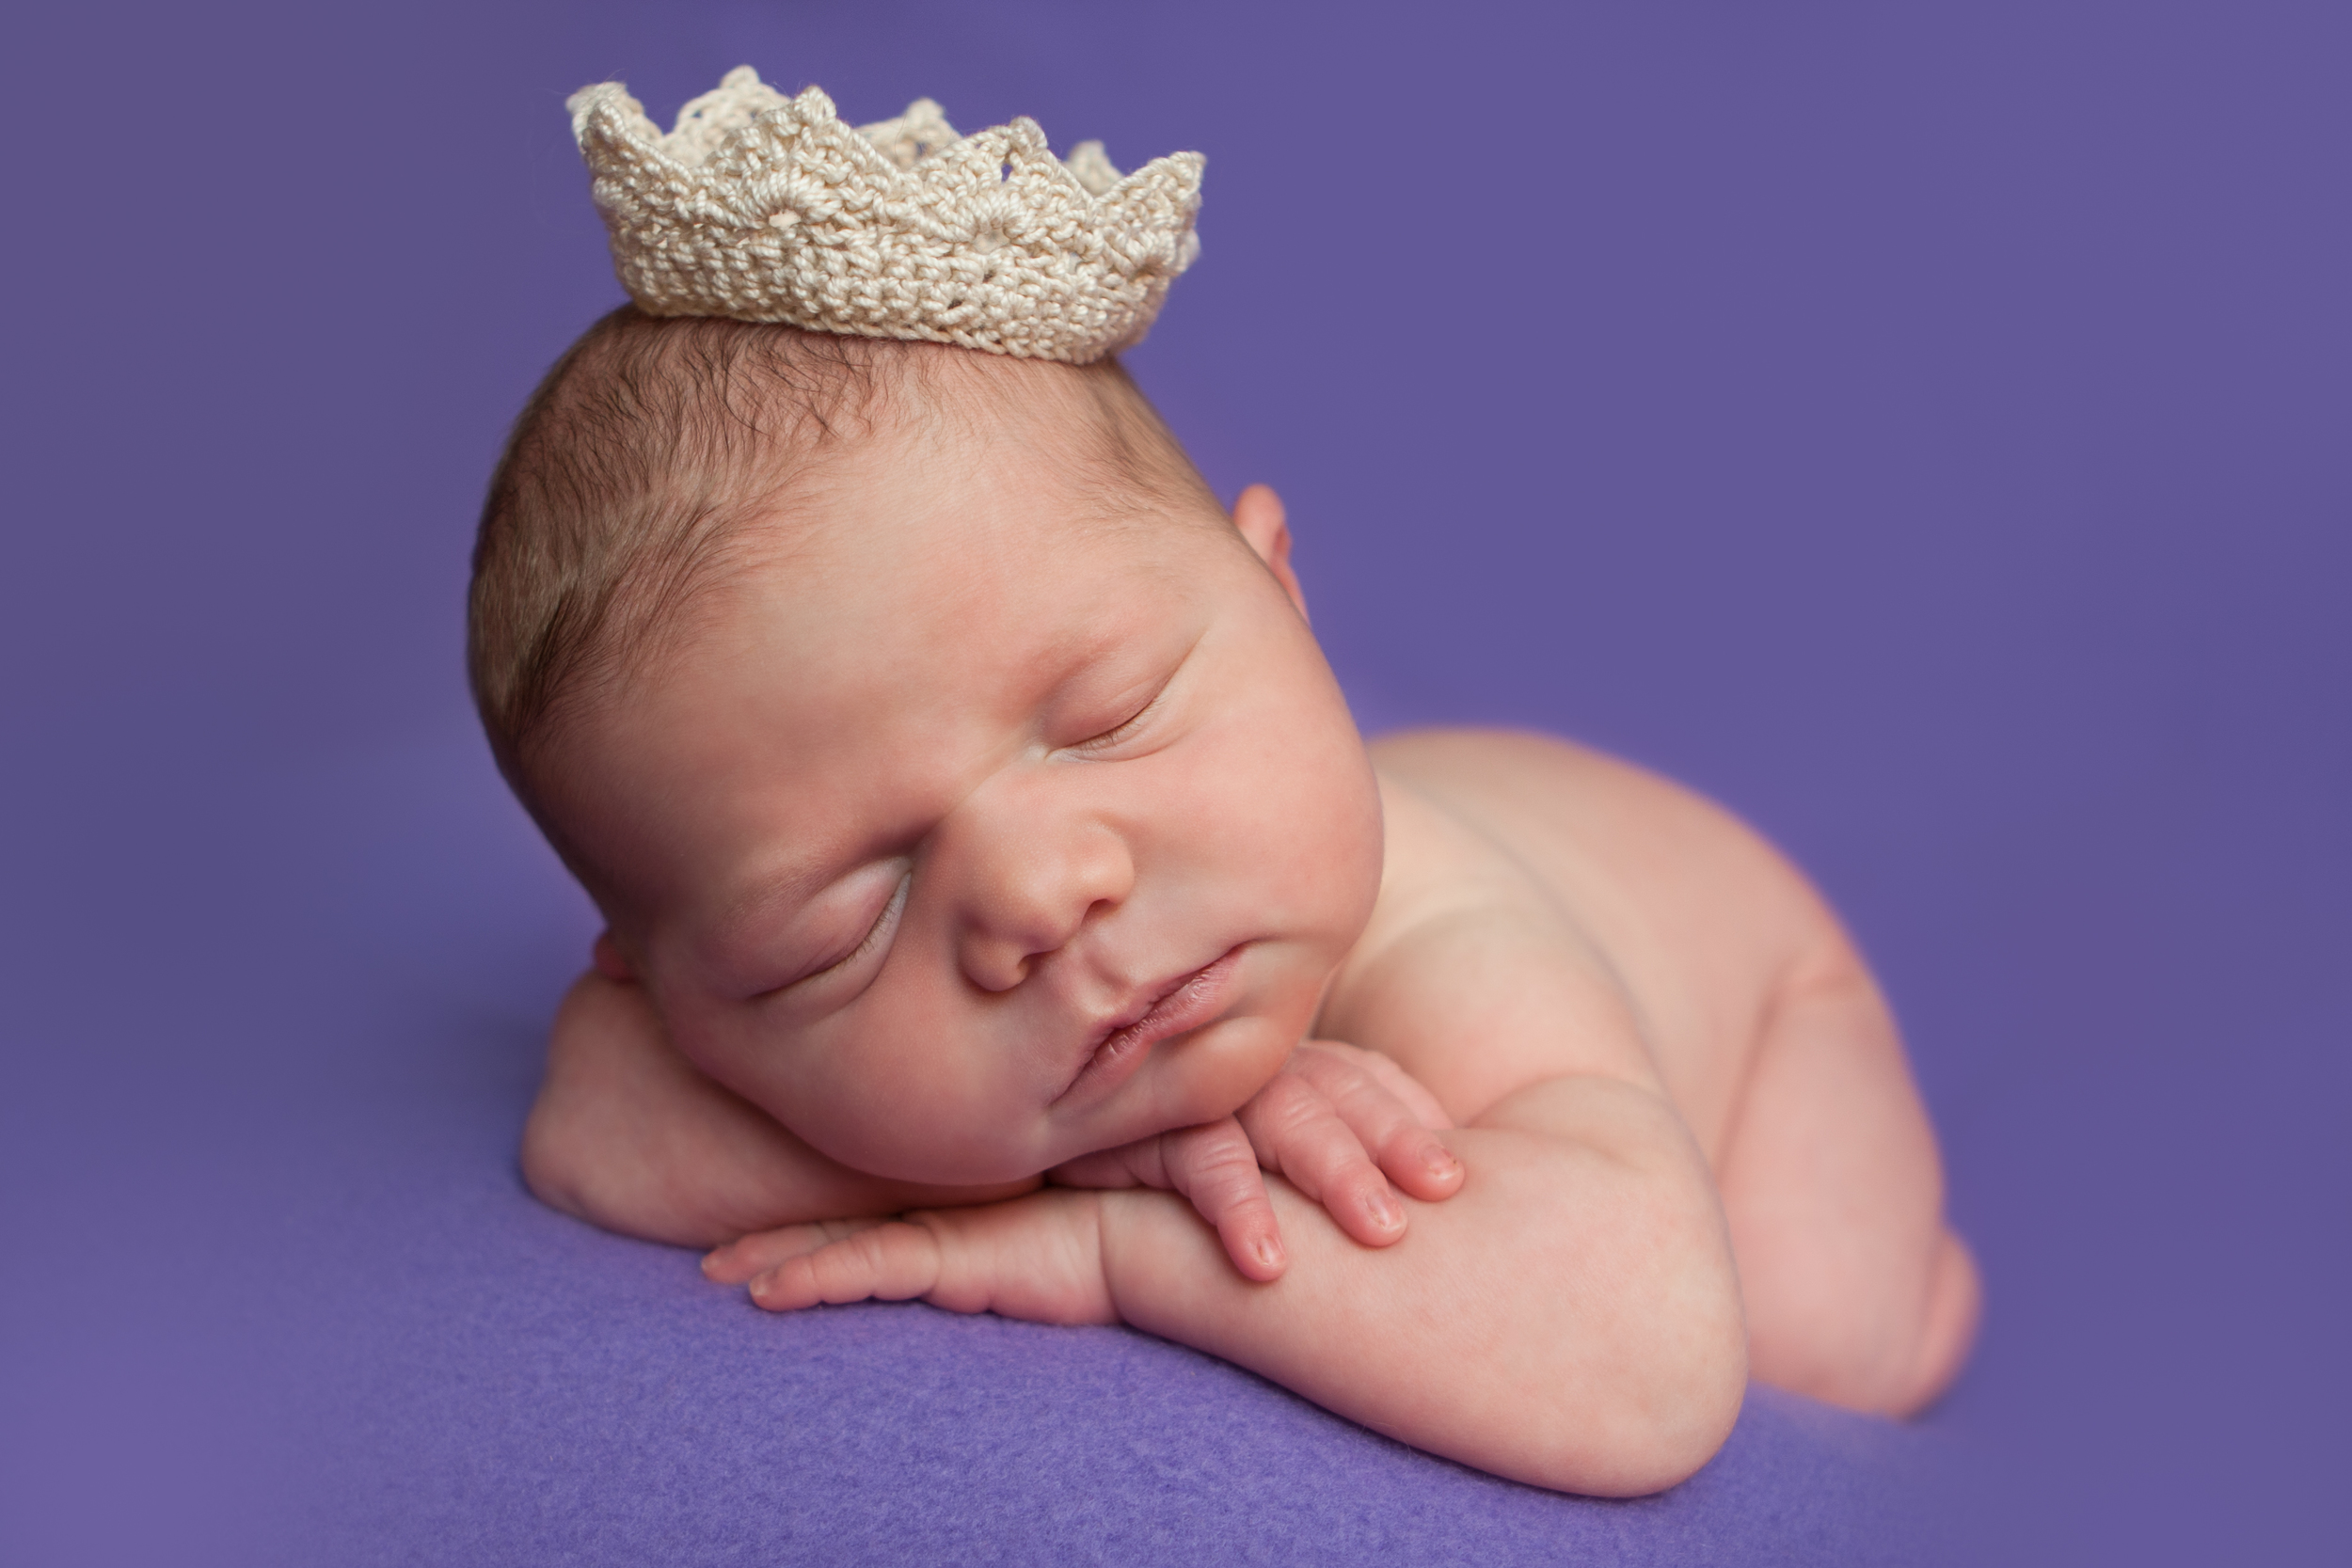 Newborn baby girl with crochet tiny crown, chin on wrists head on hands   bean bag pose on purple fabric backdrop, Westchester County, New York Newborn Photographer, Amanda Noelle Photography.